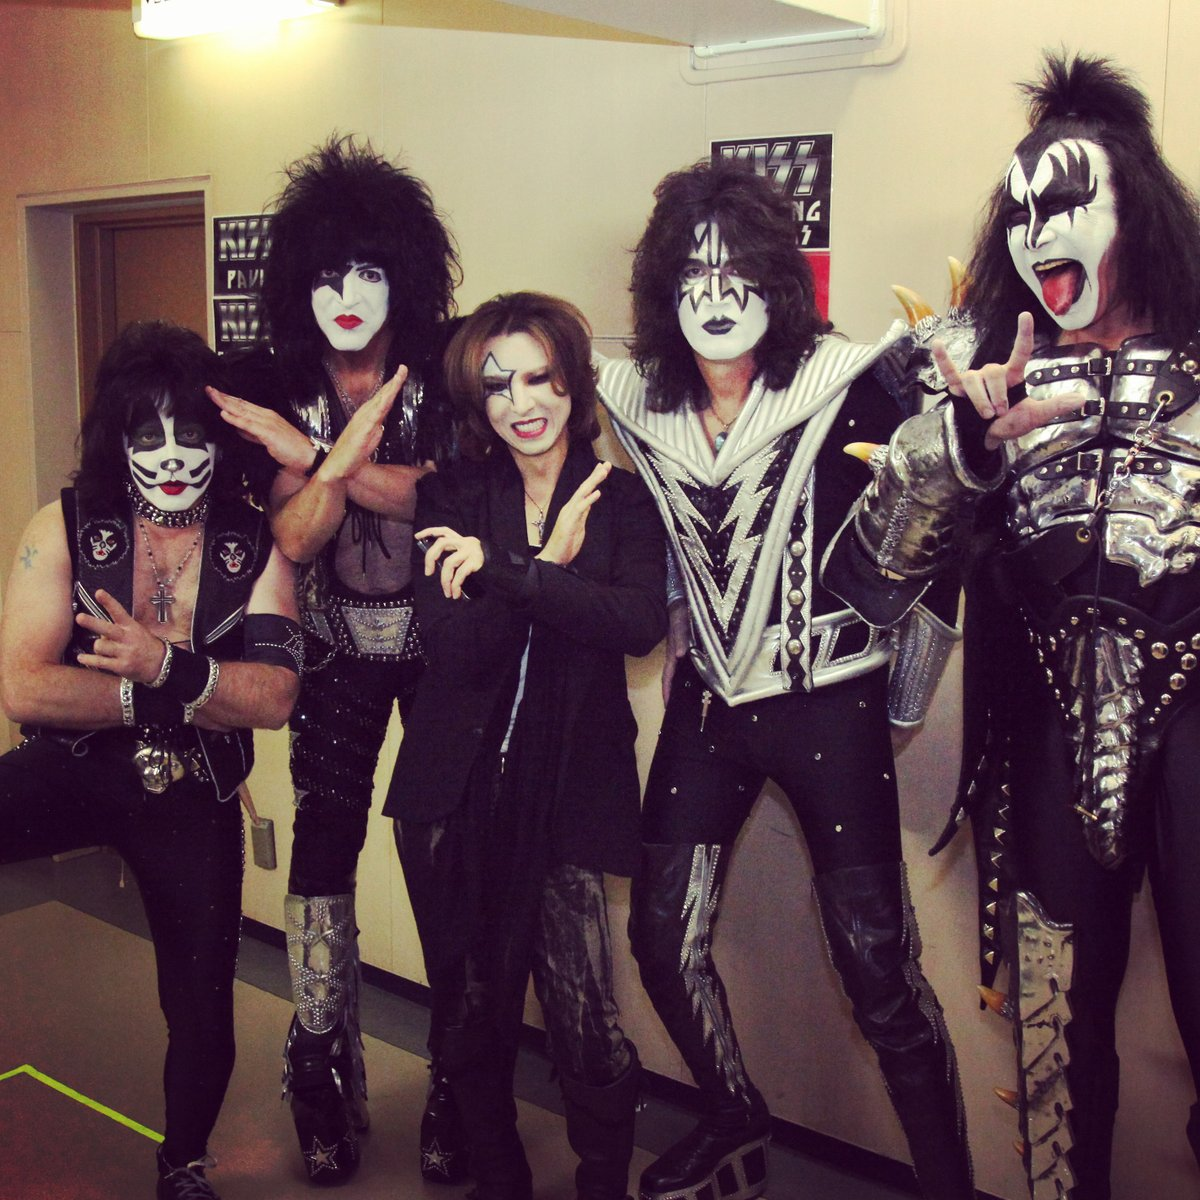 Tomorrow #KISS will be playing at #TokyoDome. They are the reason I started playing rock! 明日は #キッス の #東京ドーム 公演。俺の人生を変えたバンド! The pic from the last time. @kiss @genesimmons @PaulStanleyLive @tommy_thayer #EricSinger instagram.com/p/B54yOcDg0wy/